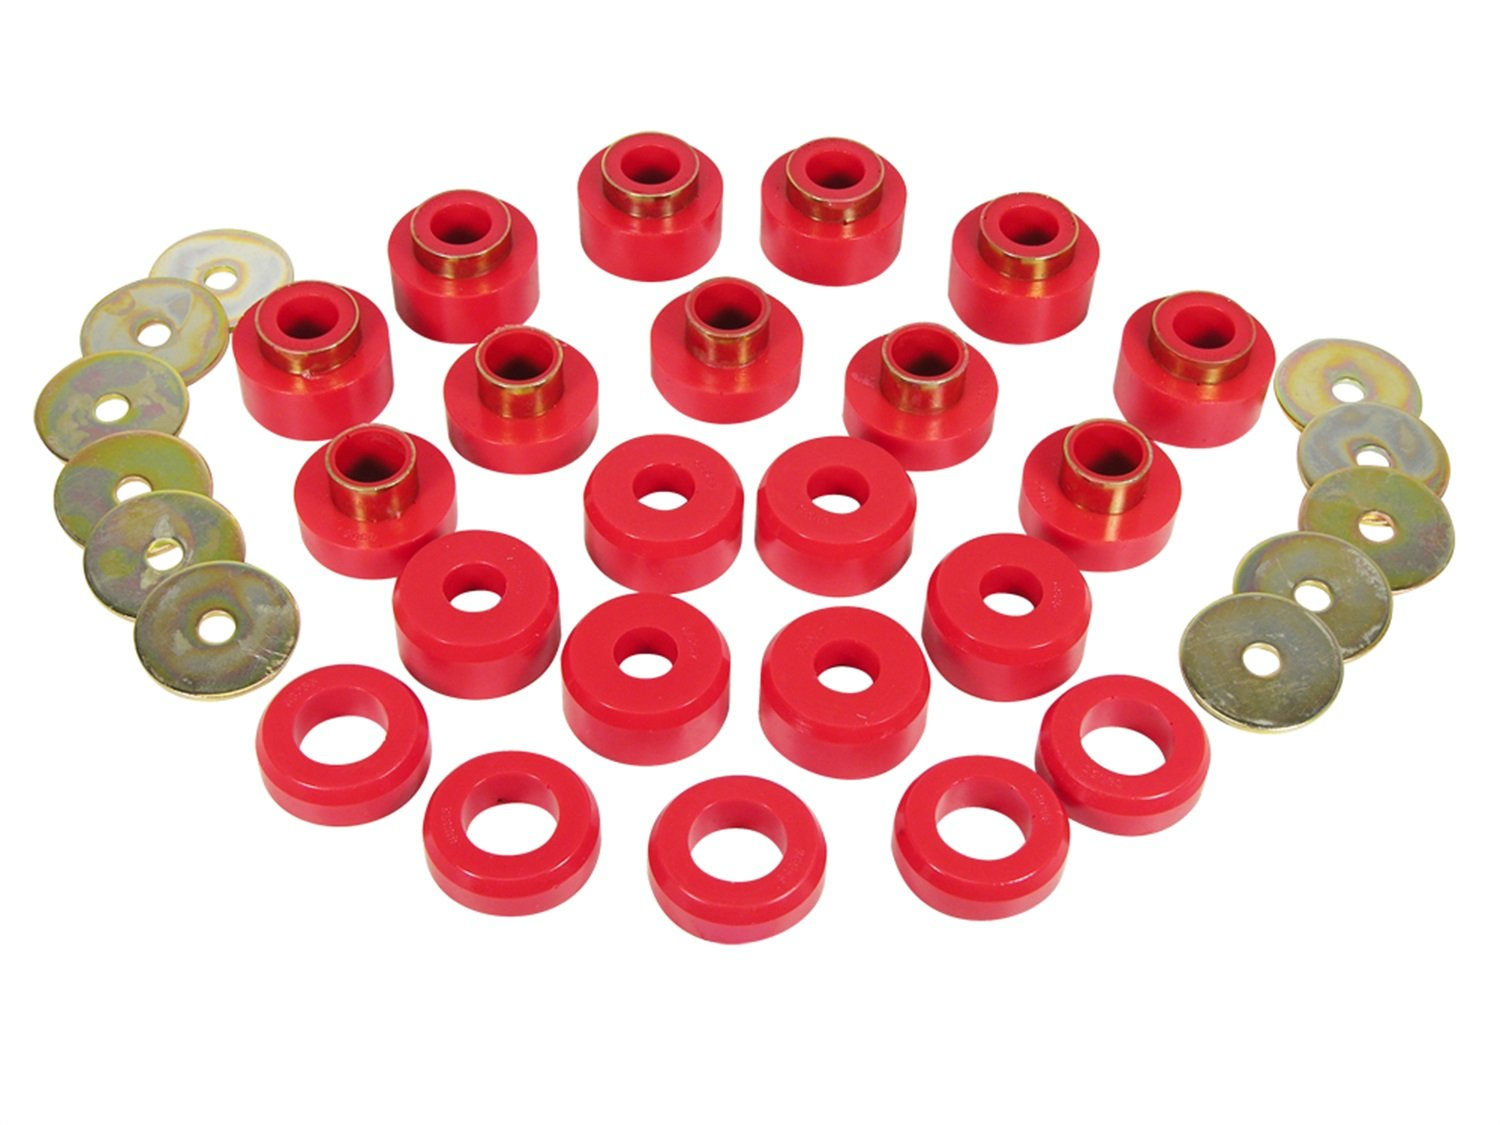 Prothane 1-107 Red Body Mount Bushing Kit for CJ5, CJ7, CJ8, YJ and TJ - 22 Piece